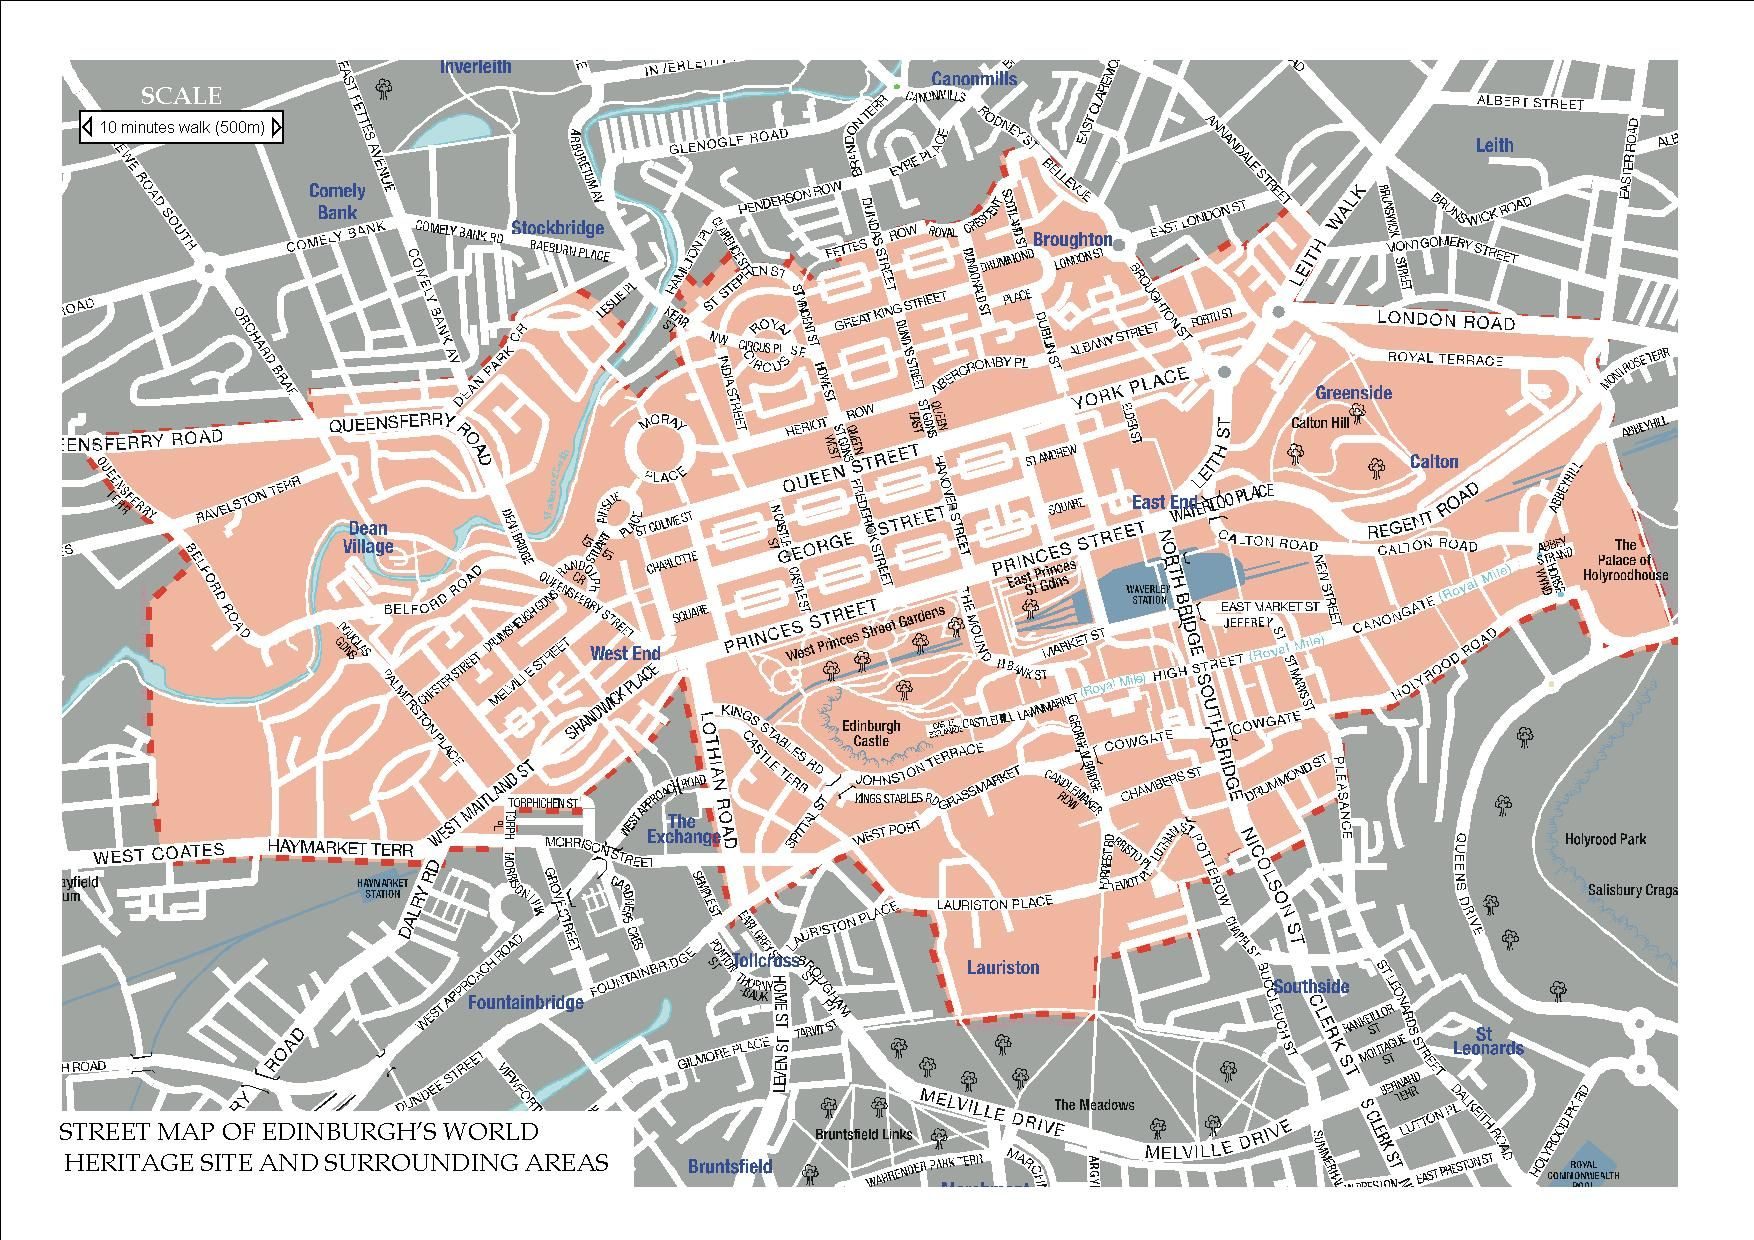 edinburgh world heritage site map  maps and globes  pinterest  - edinburgh world heritage site map